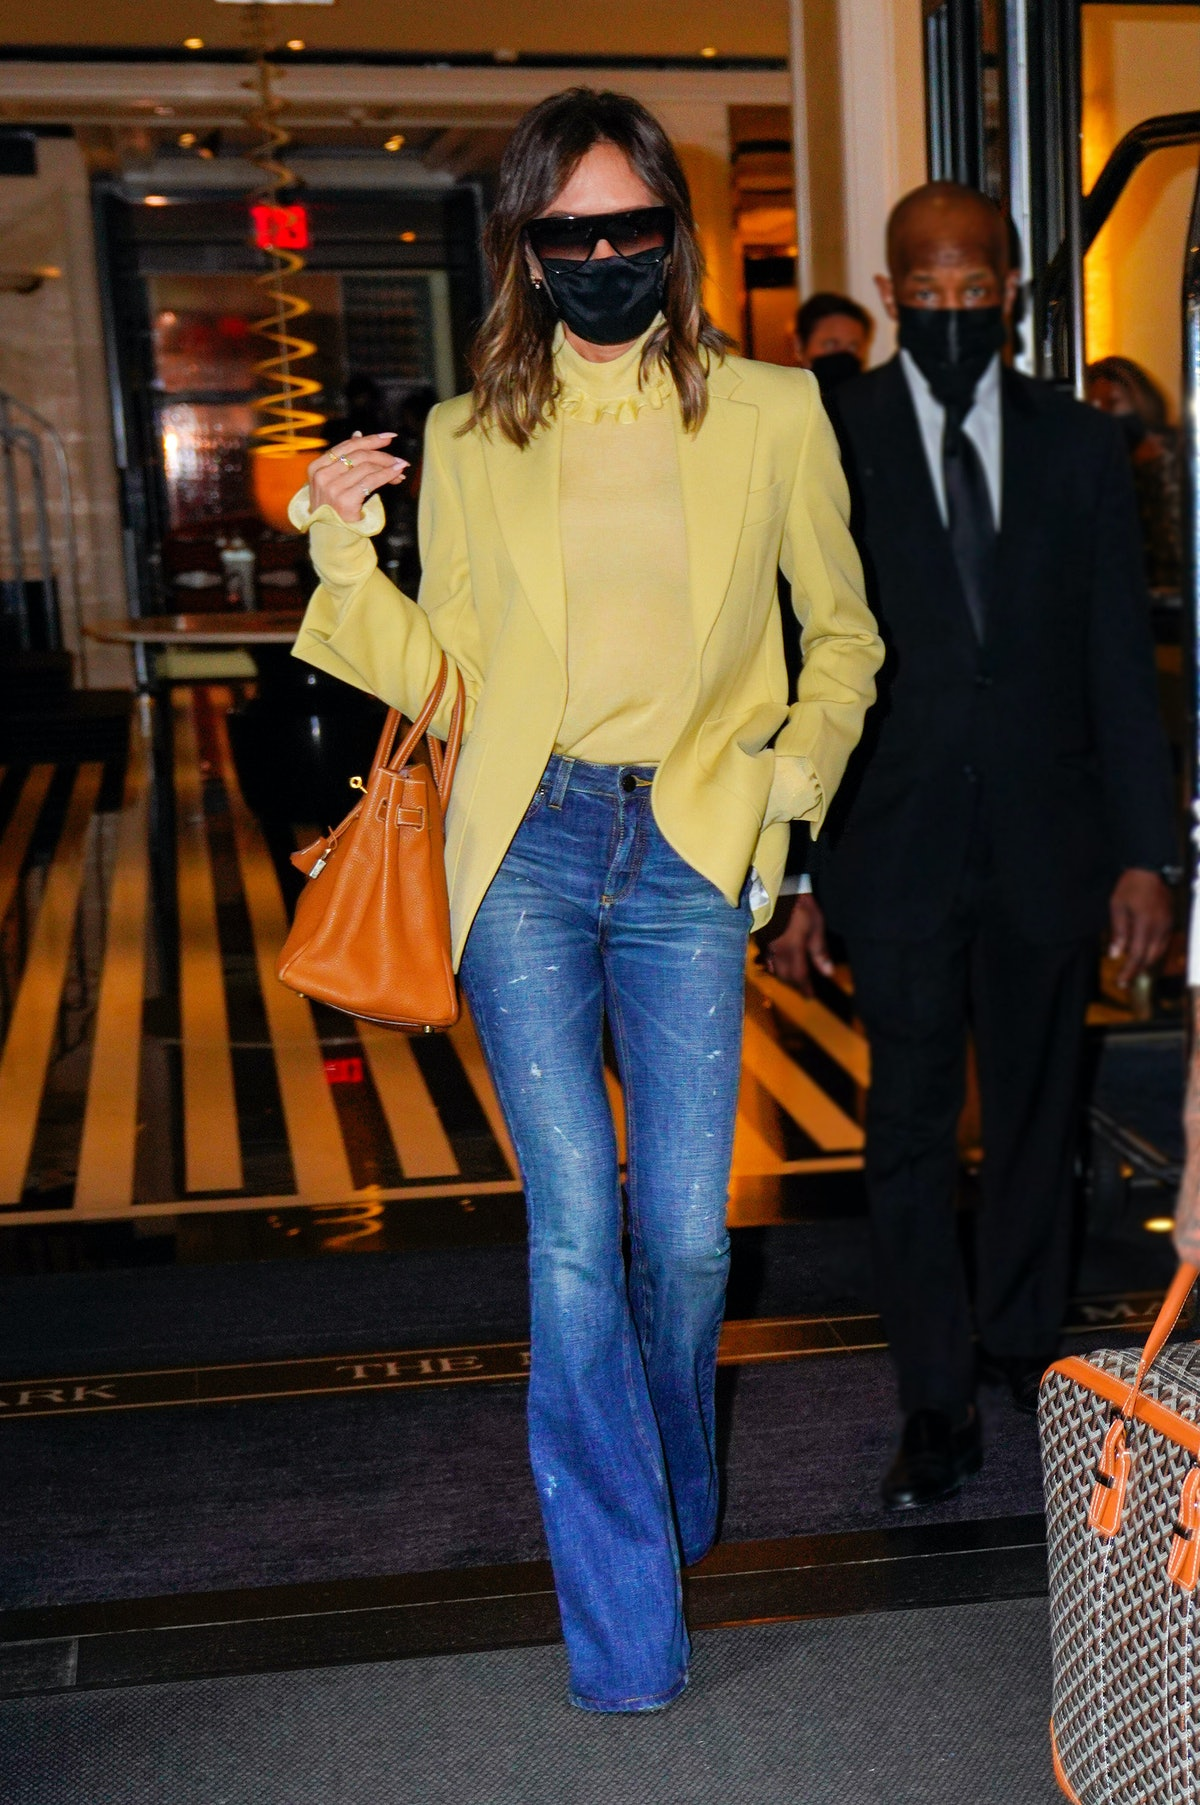 Victoria Beckham wearing yellow with jeans